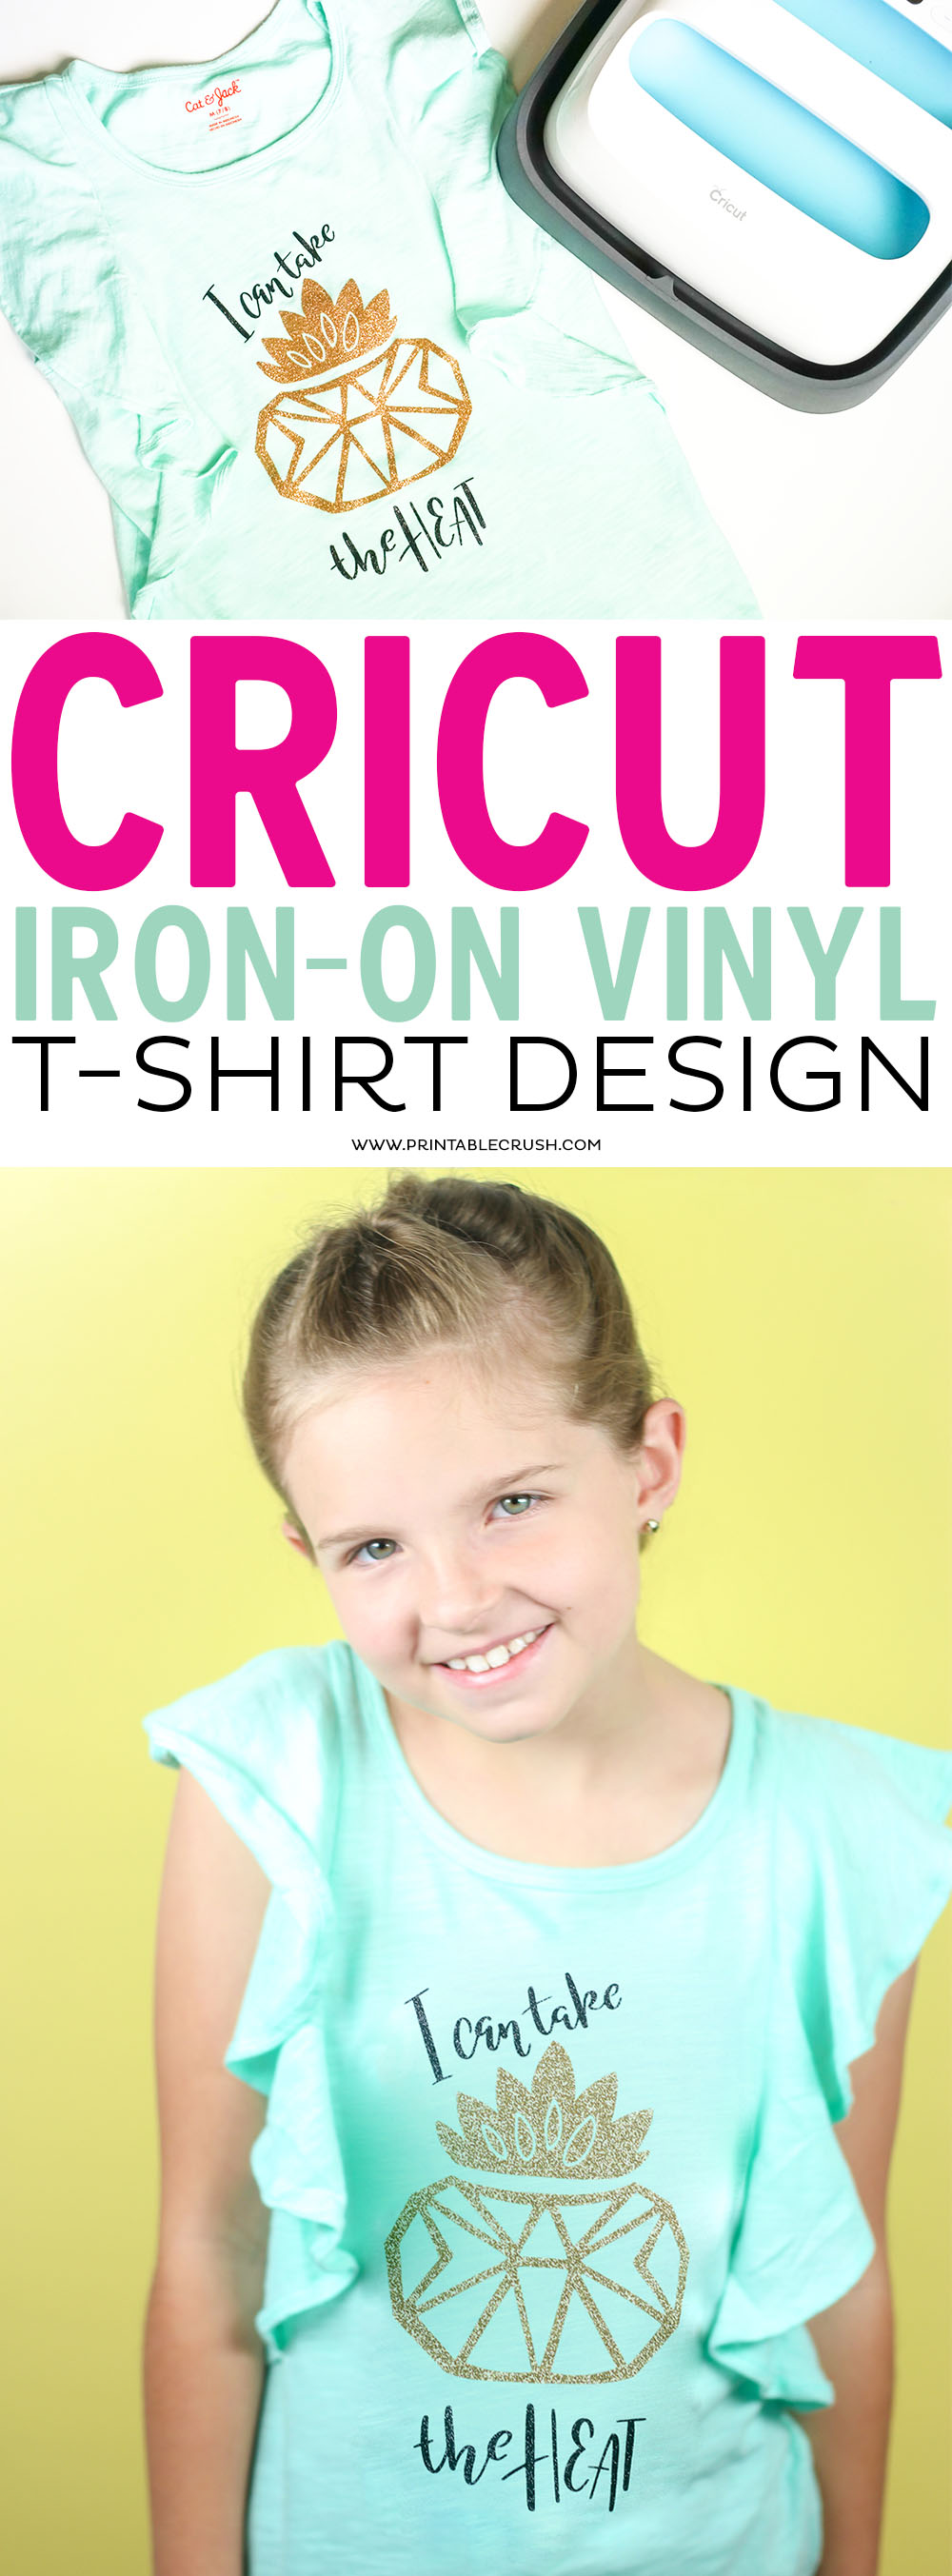 Cricut Iron-On Vinyl Succulent T-shirt Design